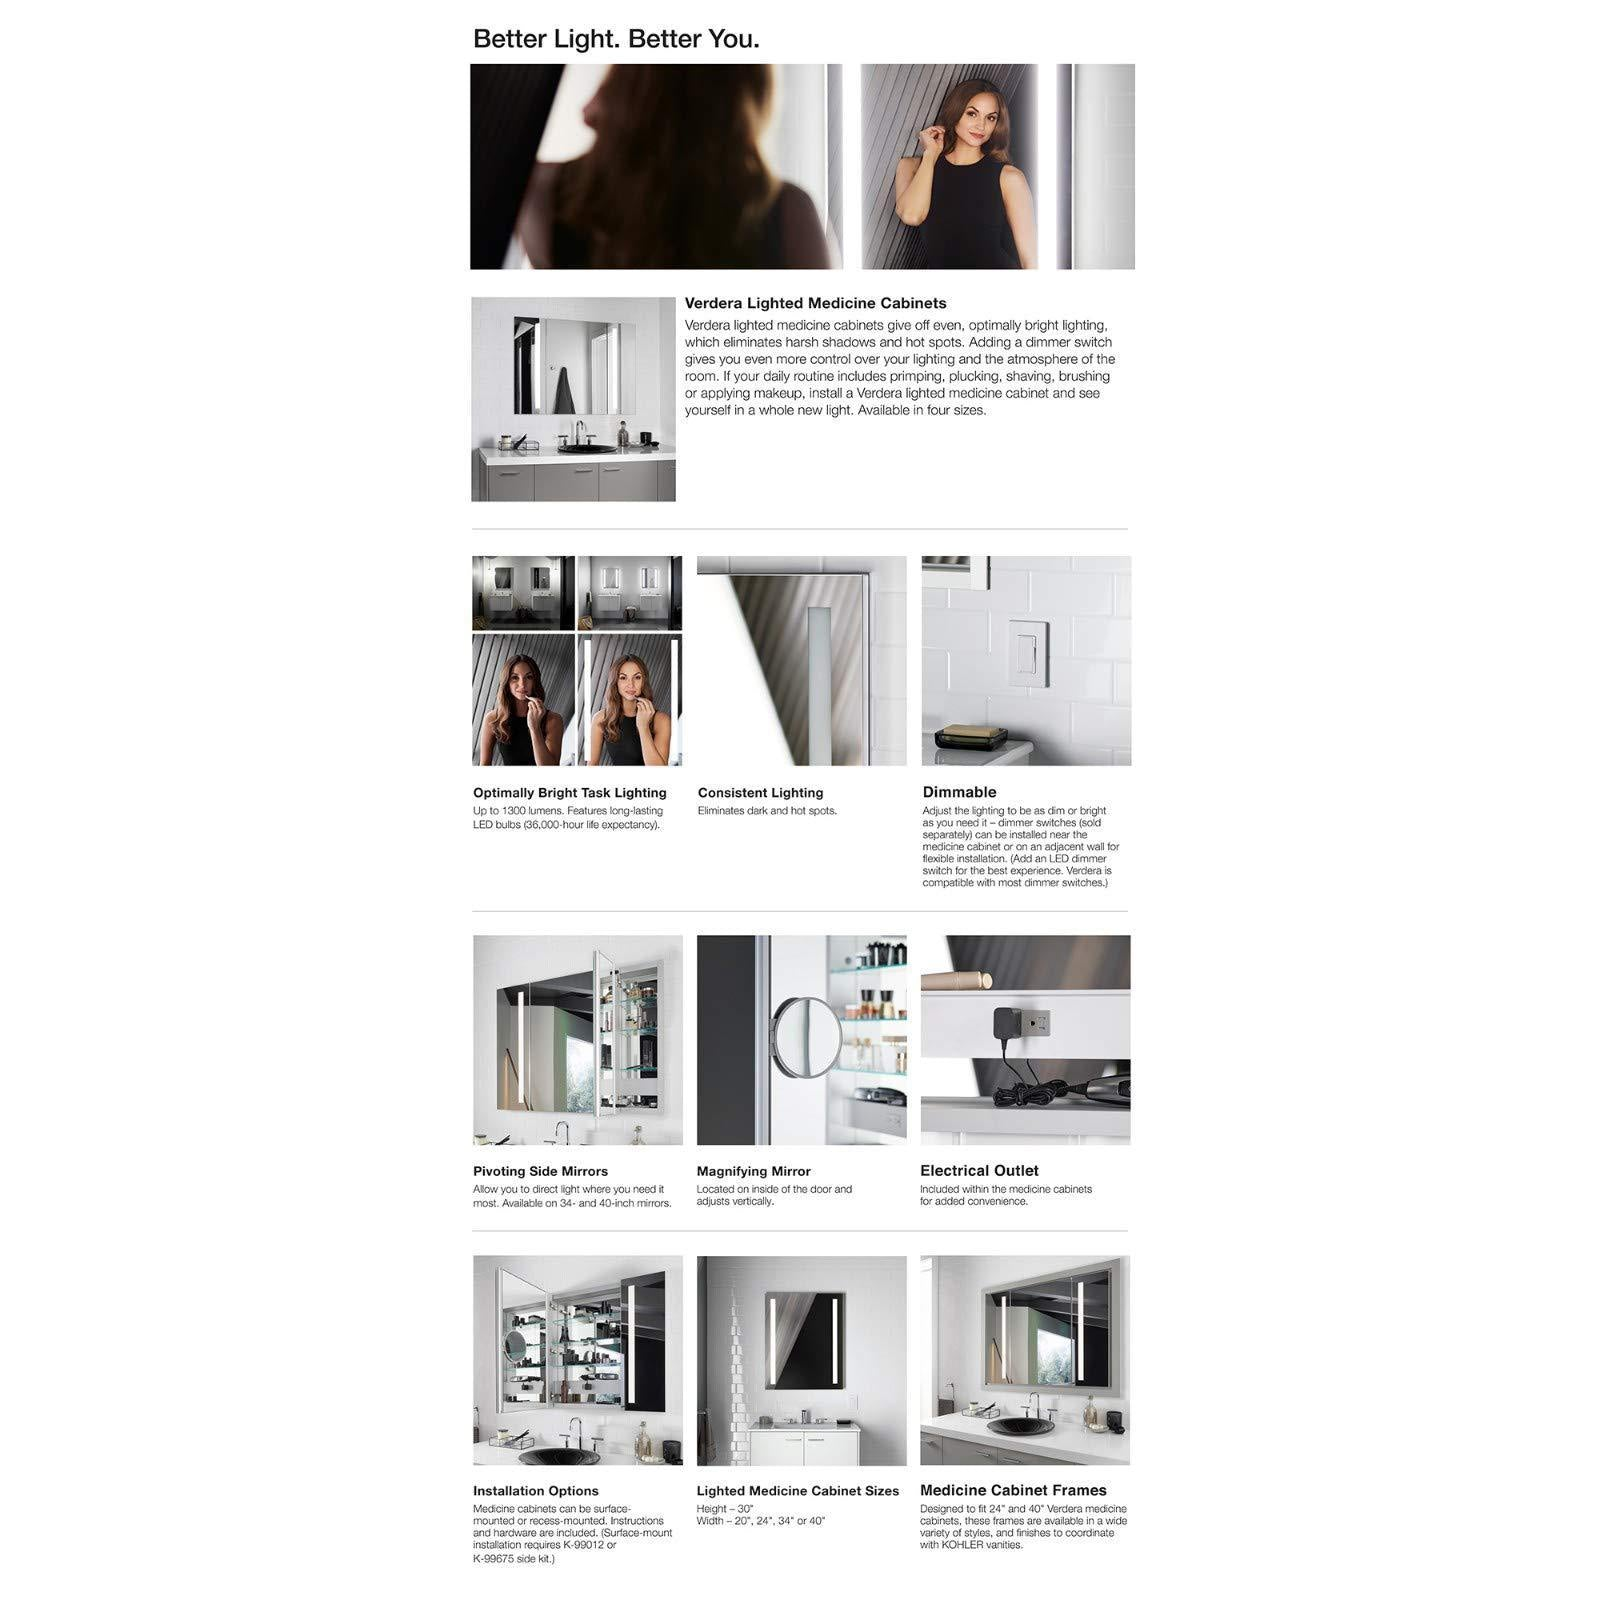 Amazon kohler k 99011 tl na verdera 40 inch x 30 inch led lighted bathroom medicine cabinet slow close hinge internal magnifying mirror aluminum recess or surface mount 3 doors